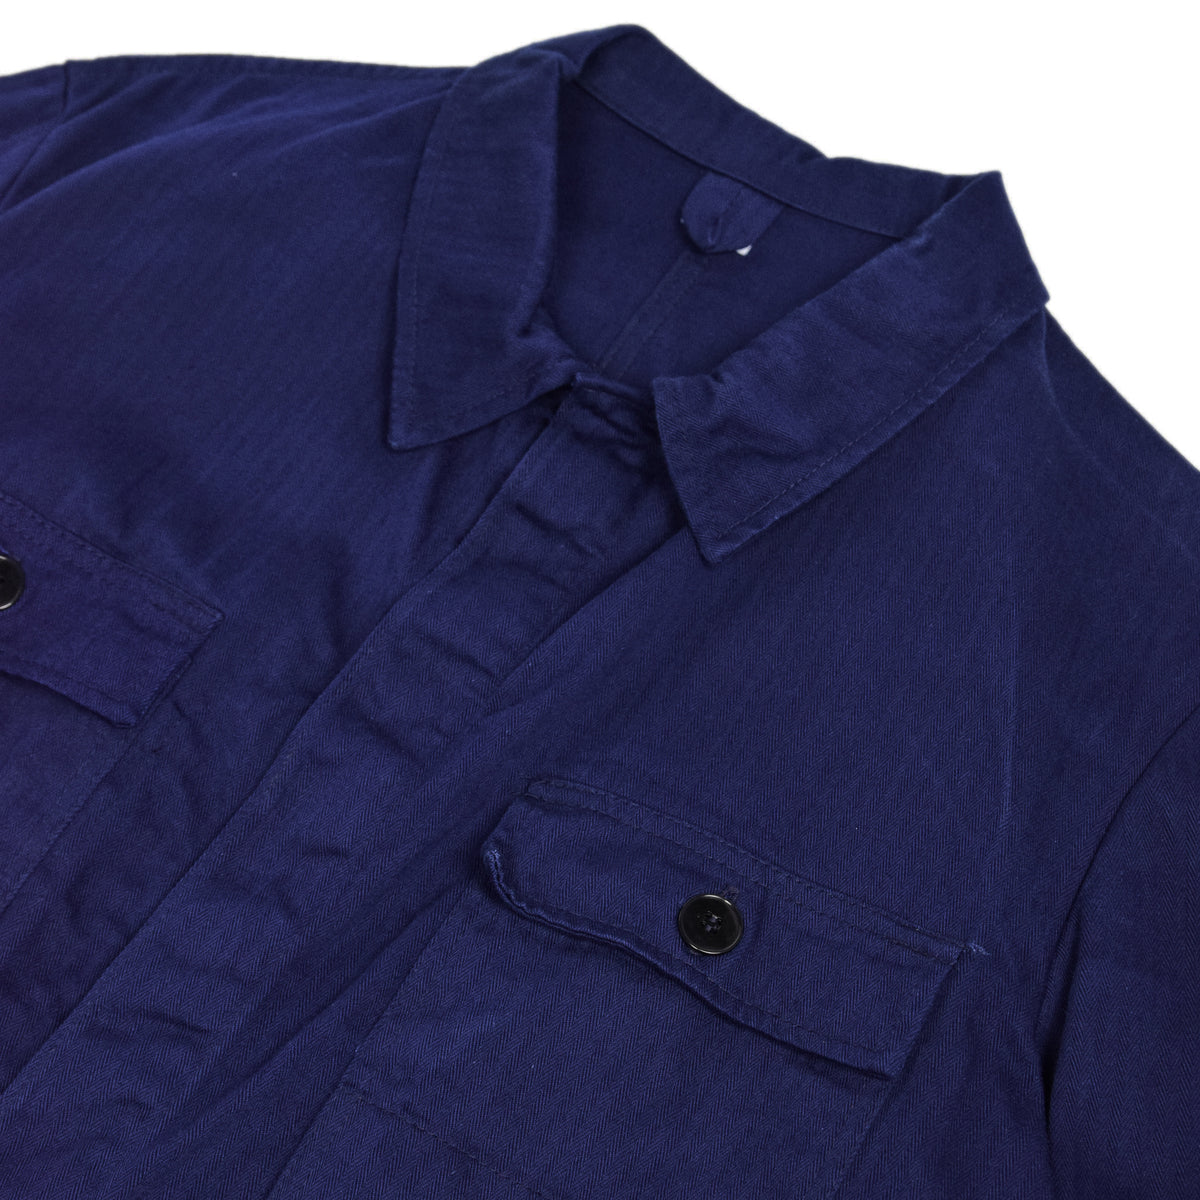 Vintage Blue French Style Worker Sanforized Herringbone Chore Shirt Jacket L collar